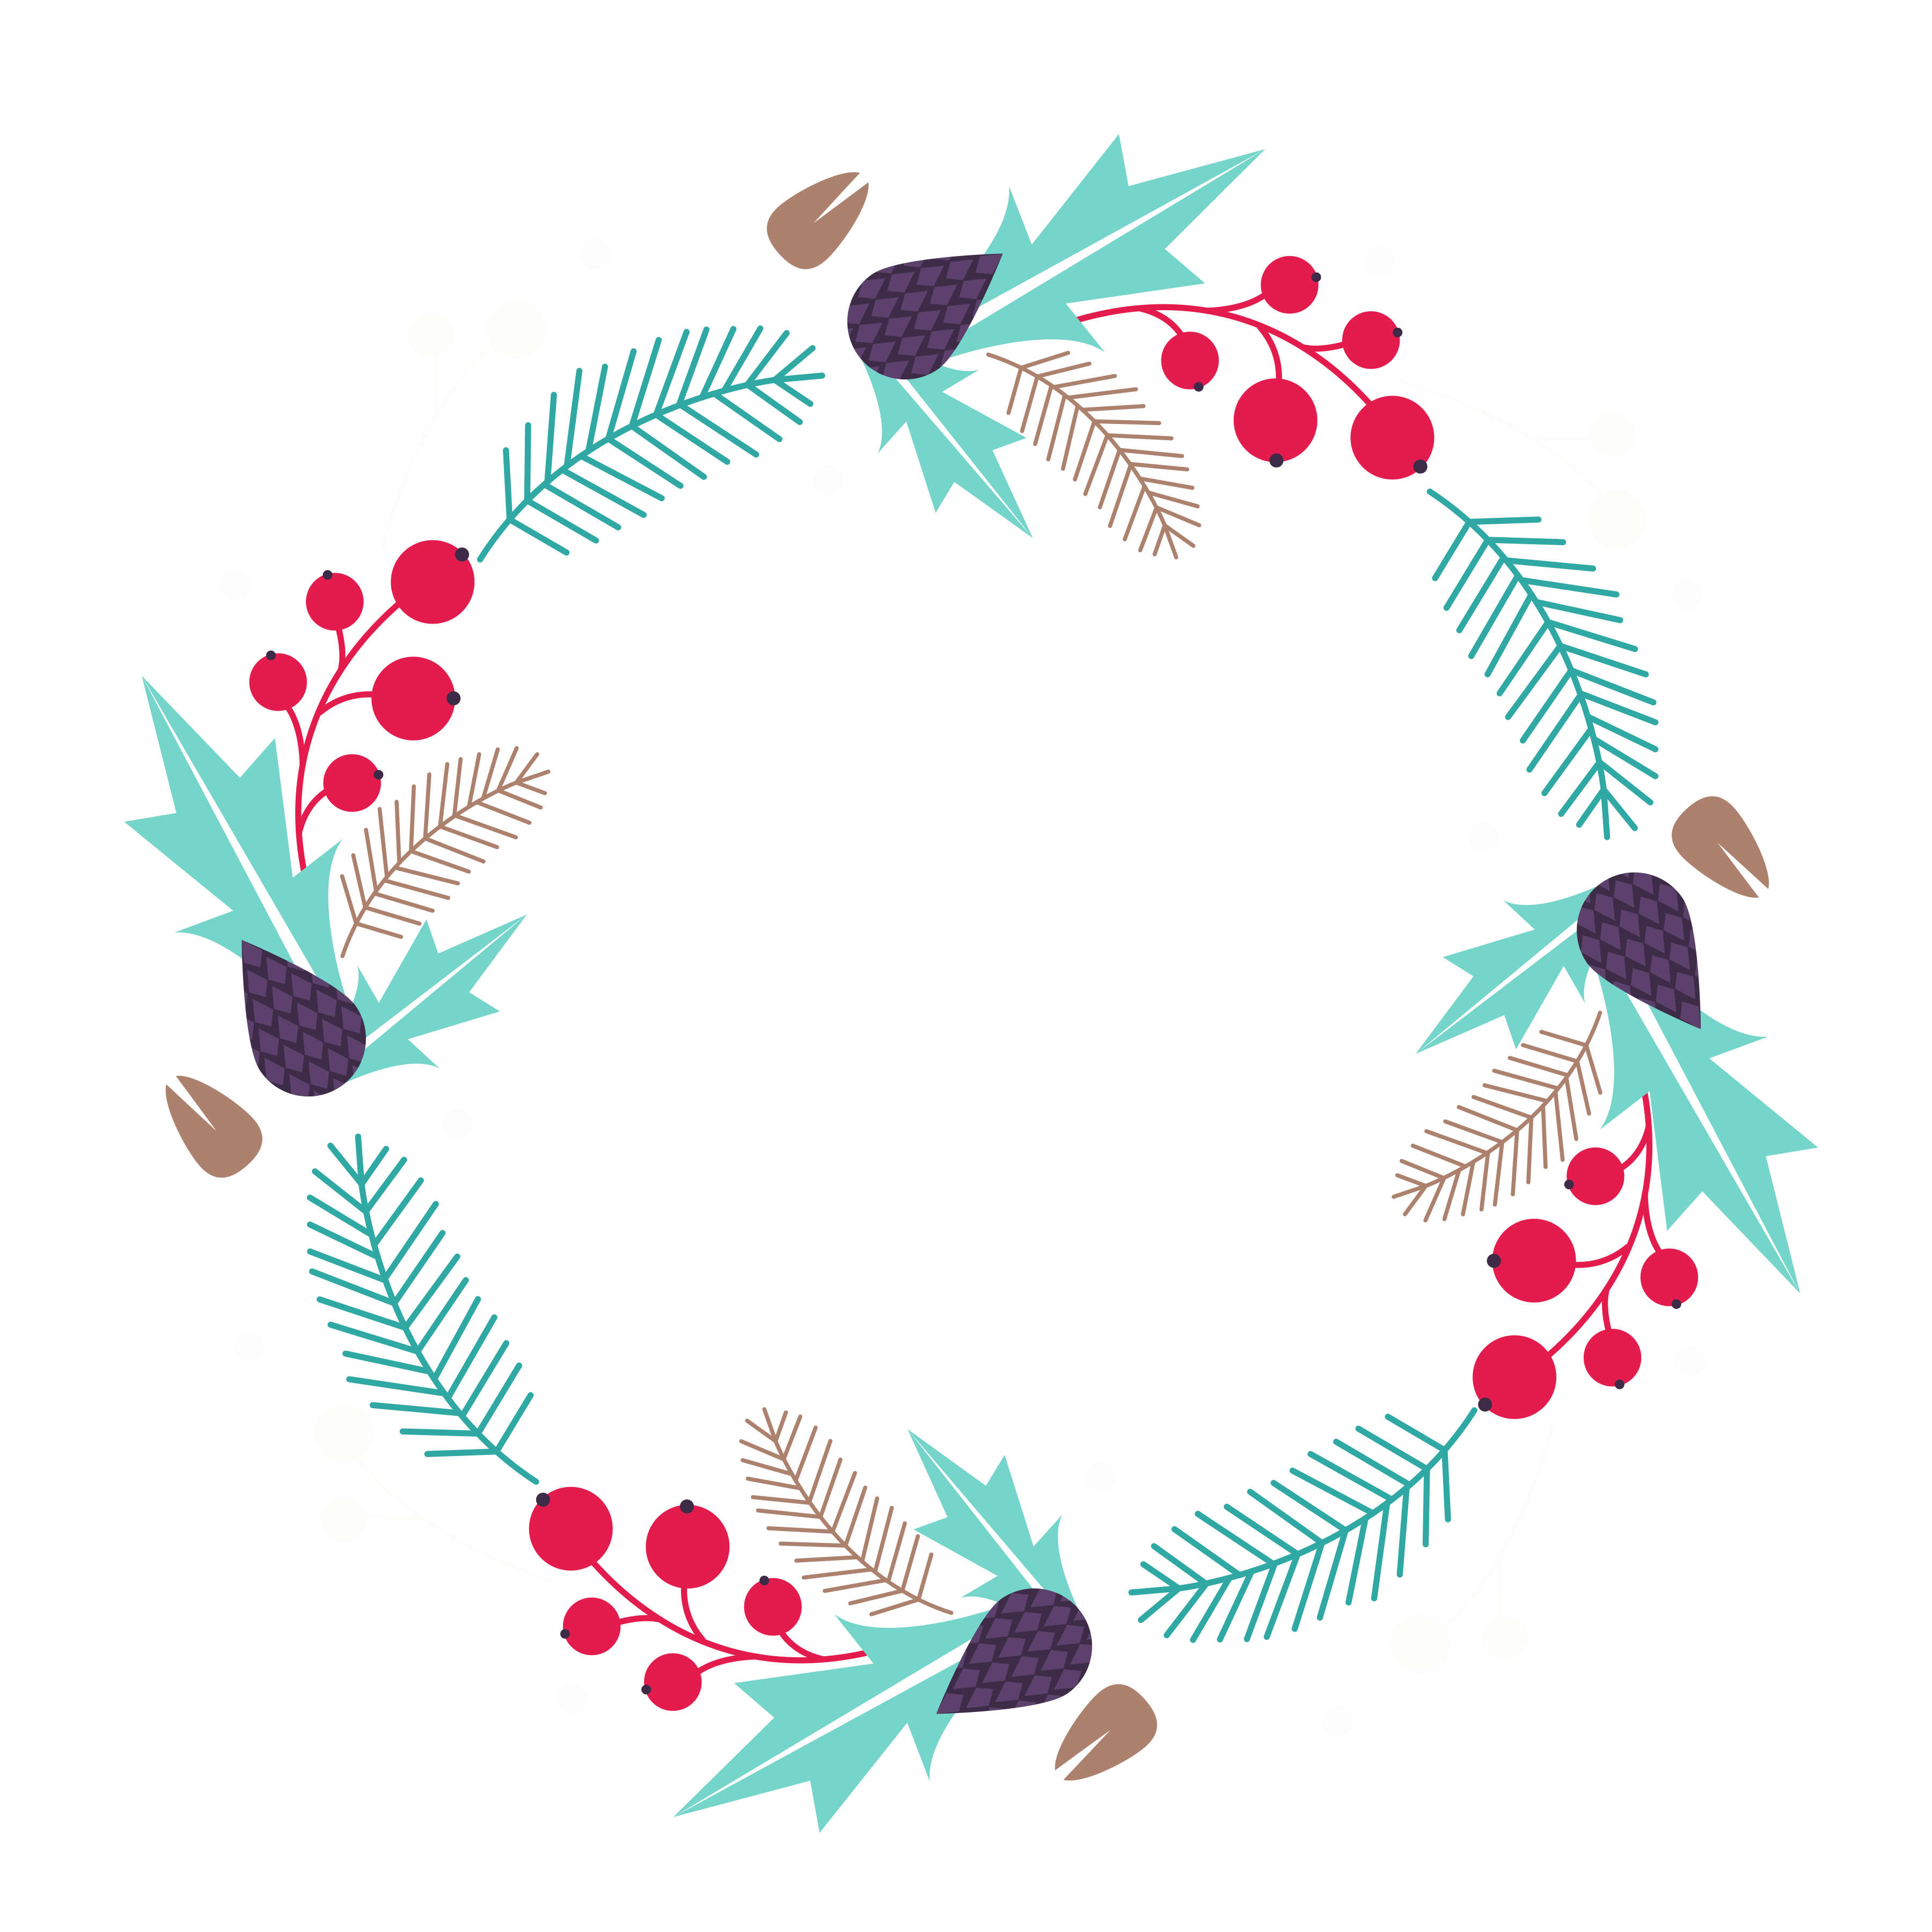 Christmas wreath clipart black and white jpg freeuse stock Free Christmas Wreath Clip Art! - Free Pretty Things For You jpg freeuse stock